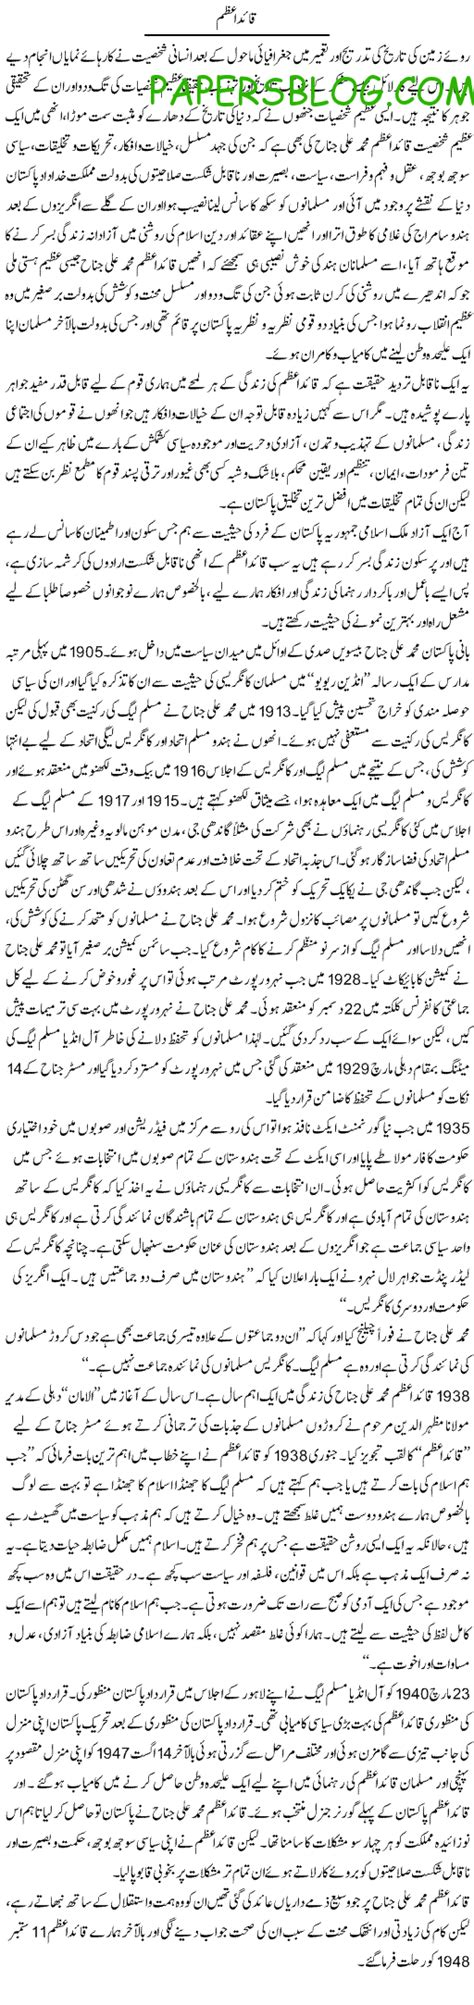 Essay On Quaid E Azam In Urdu With Poetry by Urdu Essay On Quaid E Azam Muhammad Ali Jinnah 12 21 2015 04 37 Am